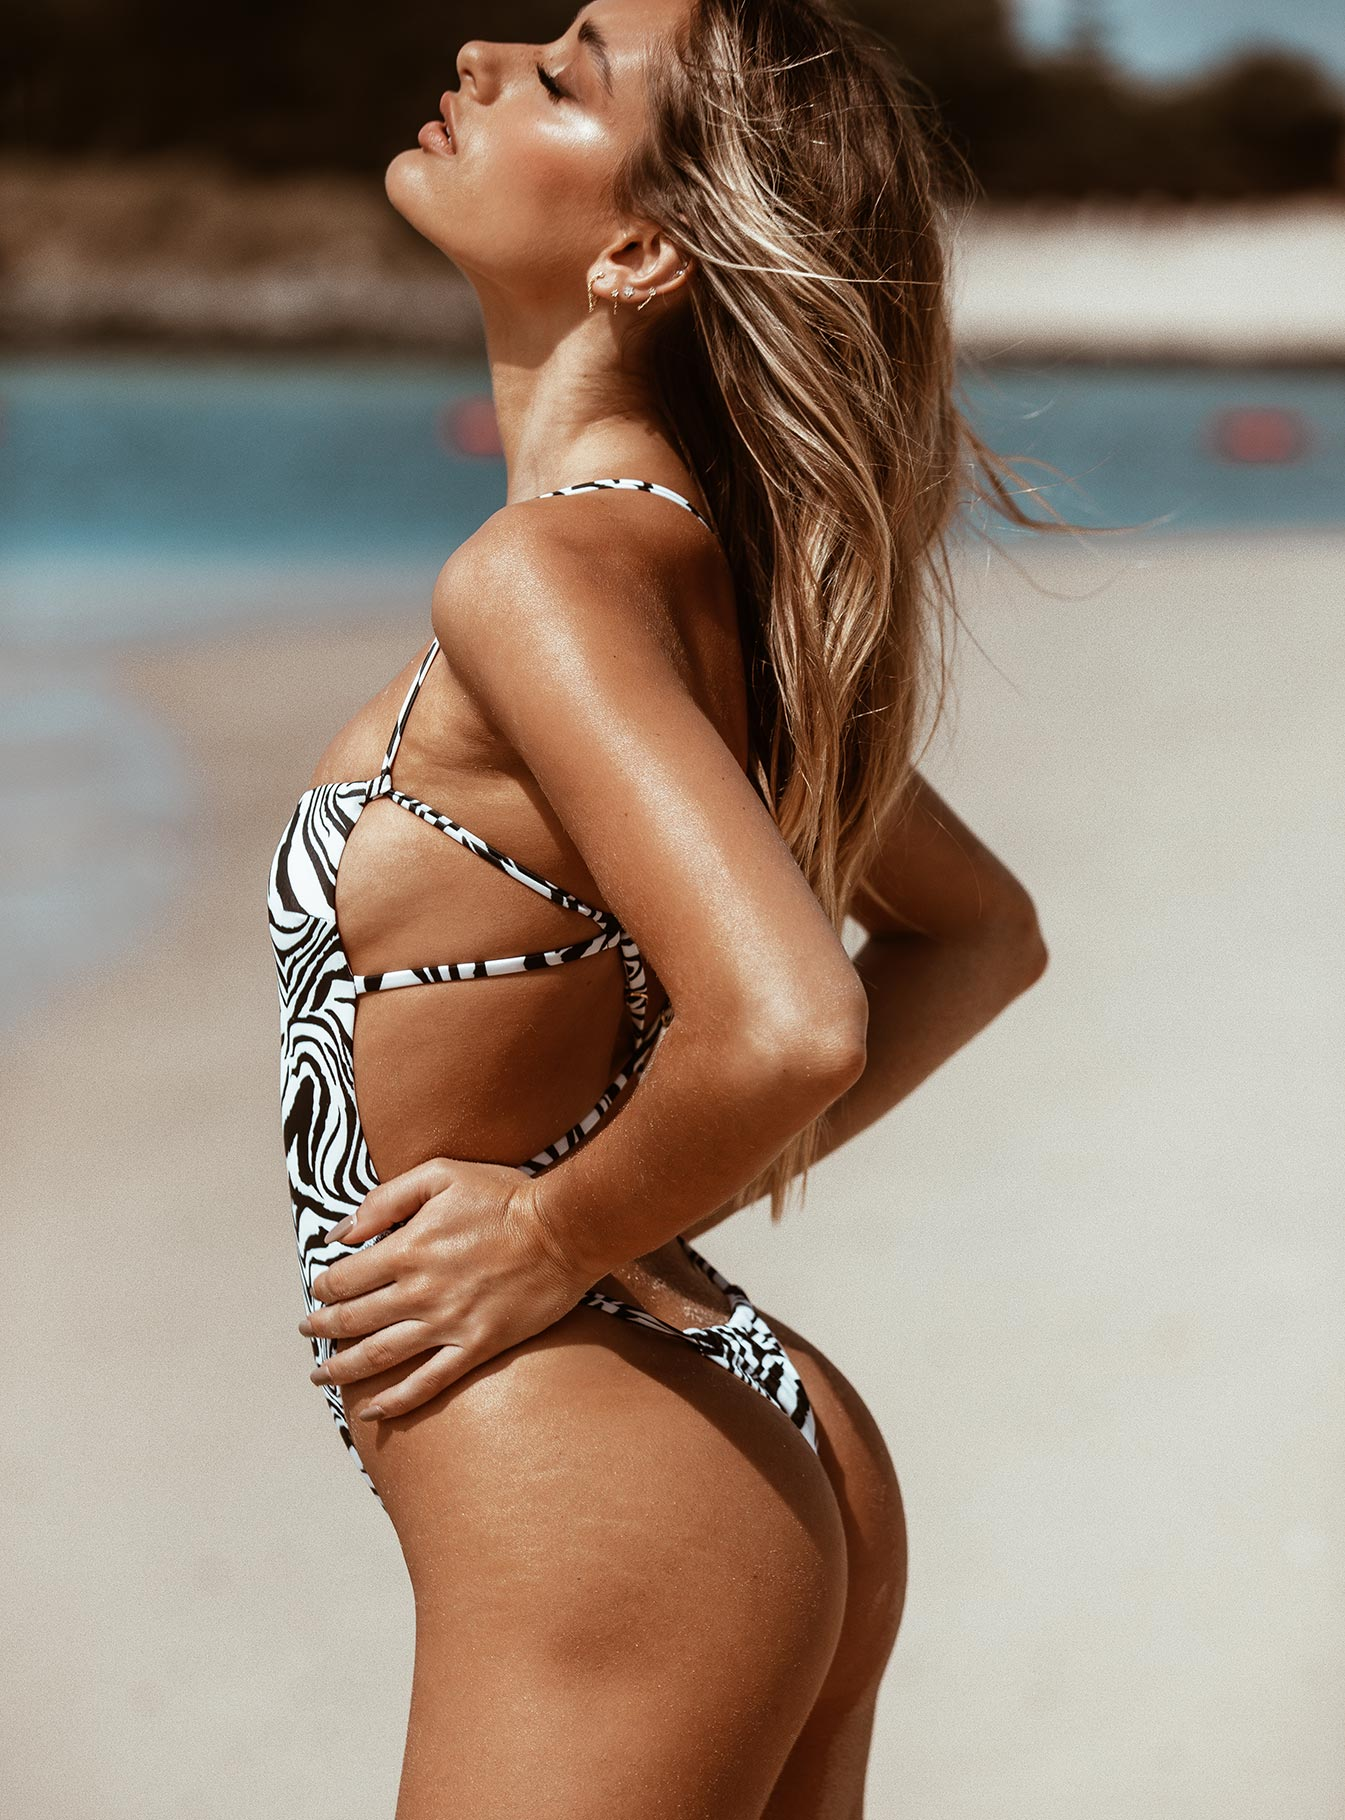 TWIIN Glitch Skimpy One Piece Black / White